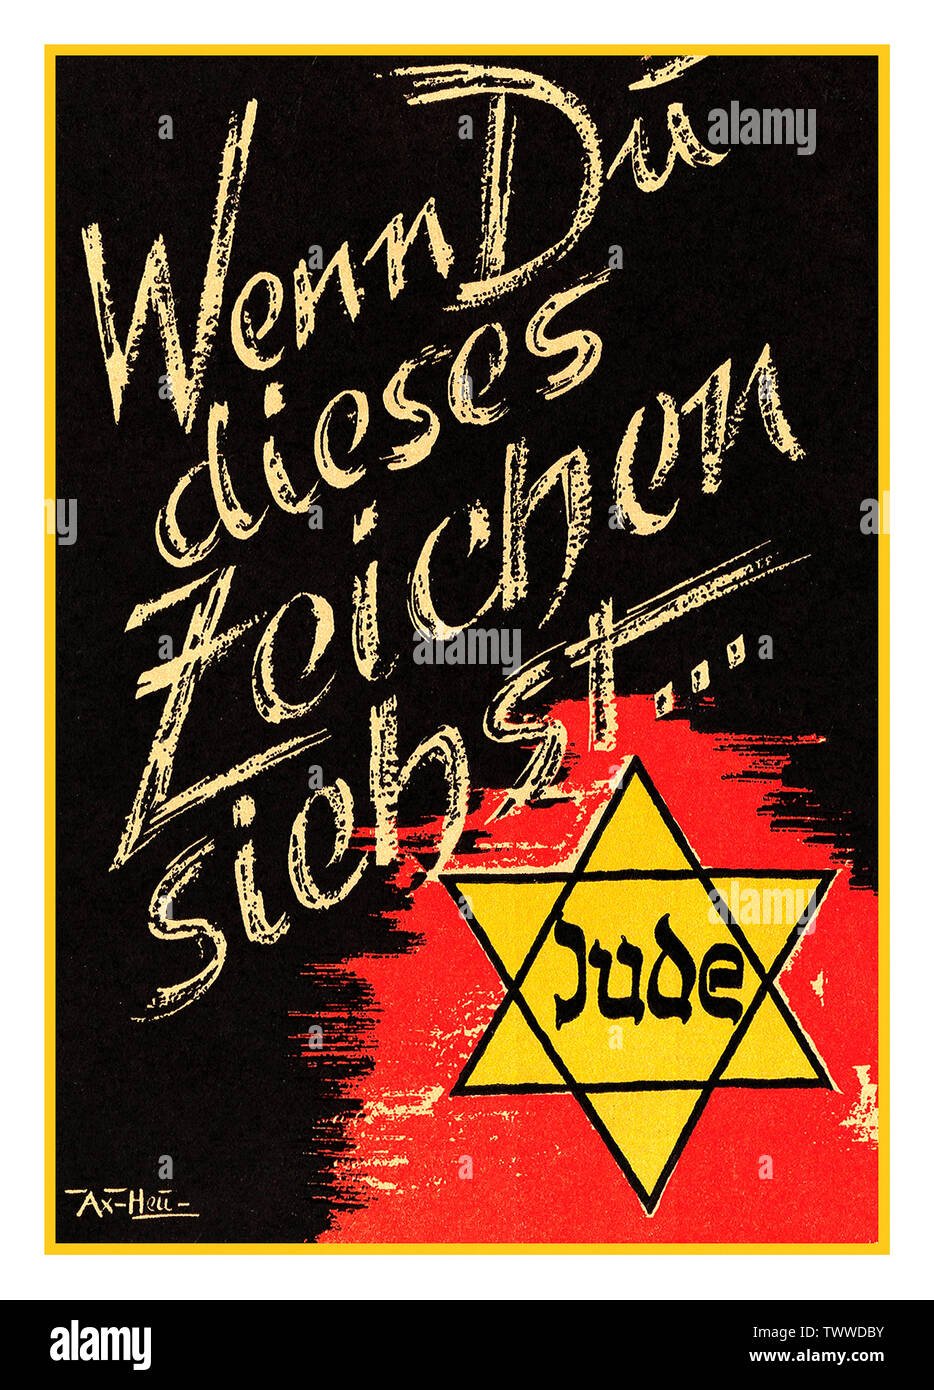 """Vintage Nazi German anti-semitic poster """"Wenn Du Dieses Zeichen siehst…""""with image of """"Jude"""" star at bottom, """"If you see this sign its a Jew"""" Nazi Germany Anti-Jewish racist inflammatory NSDAP Poster 1930's Stock Photo"""